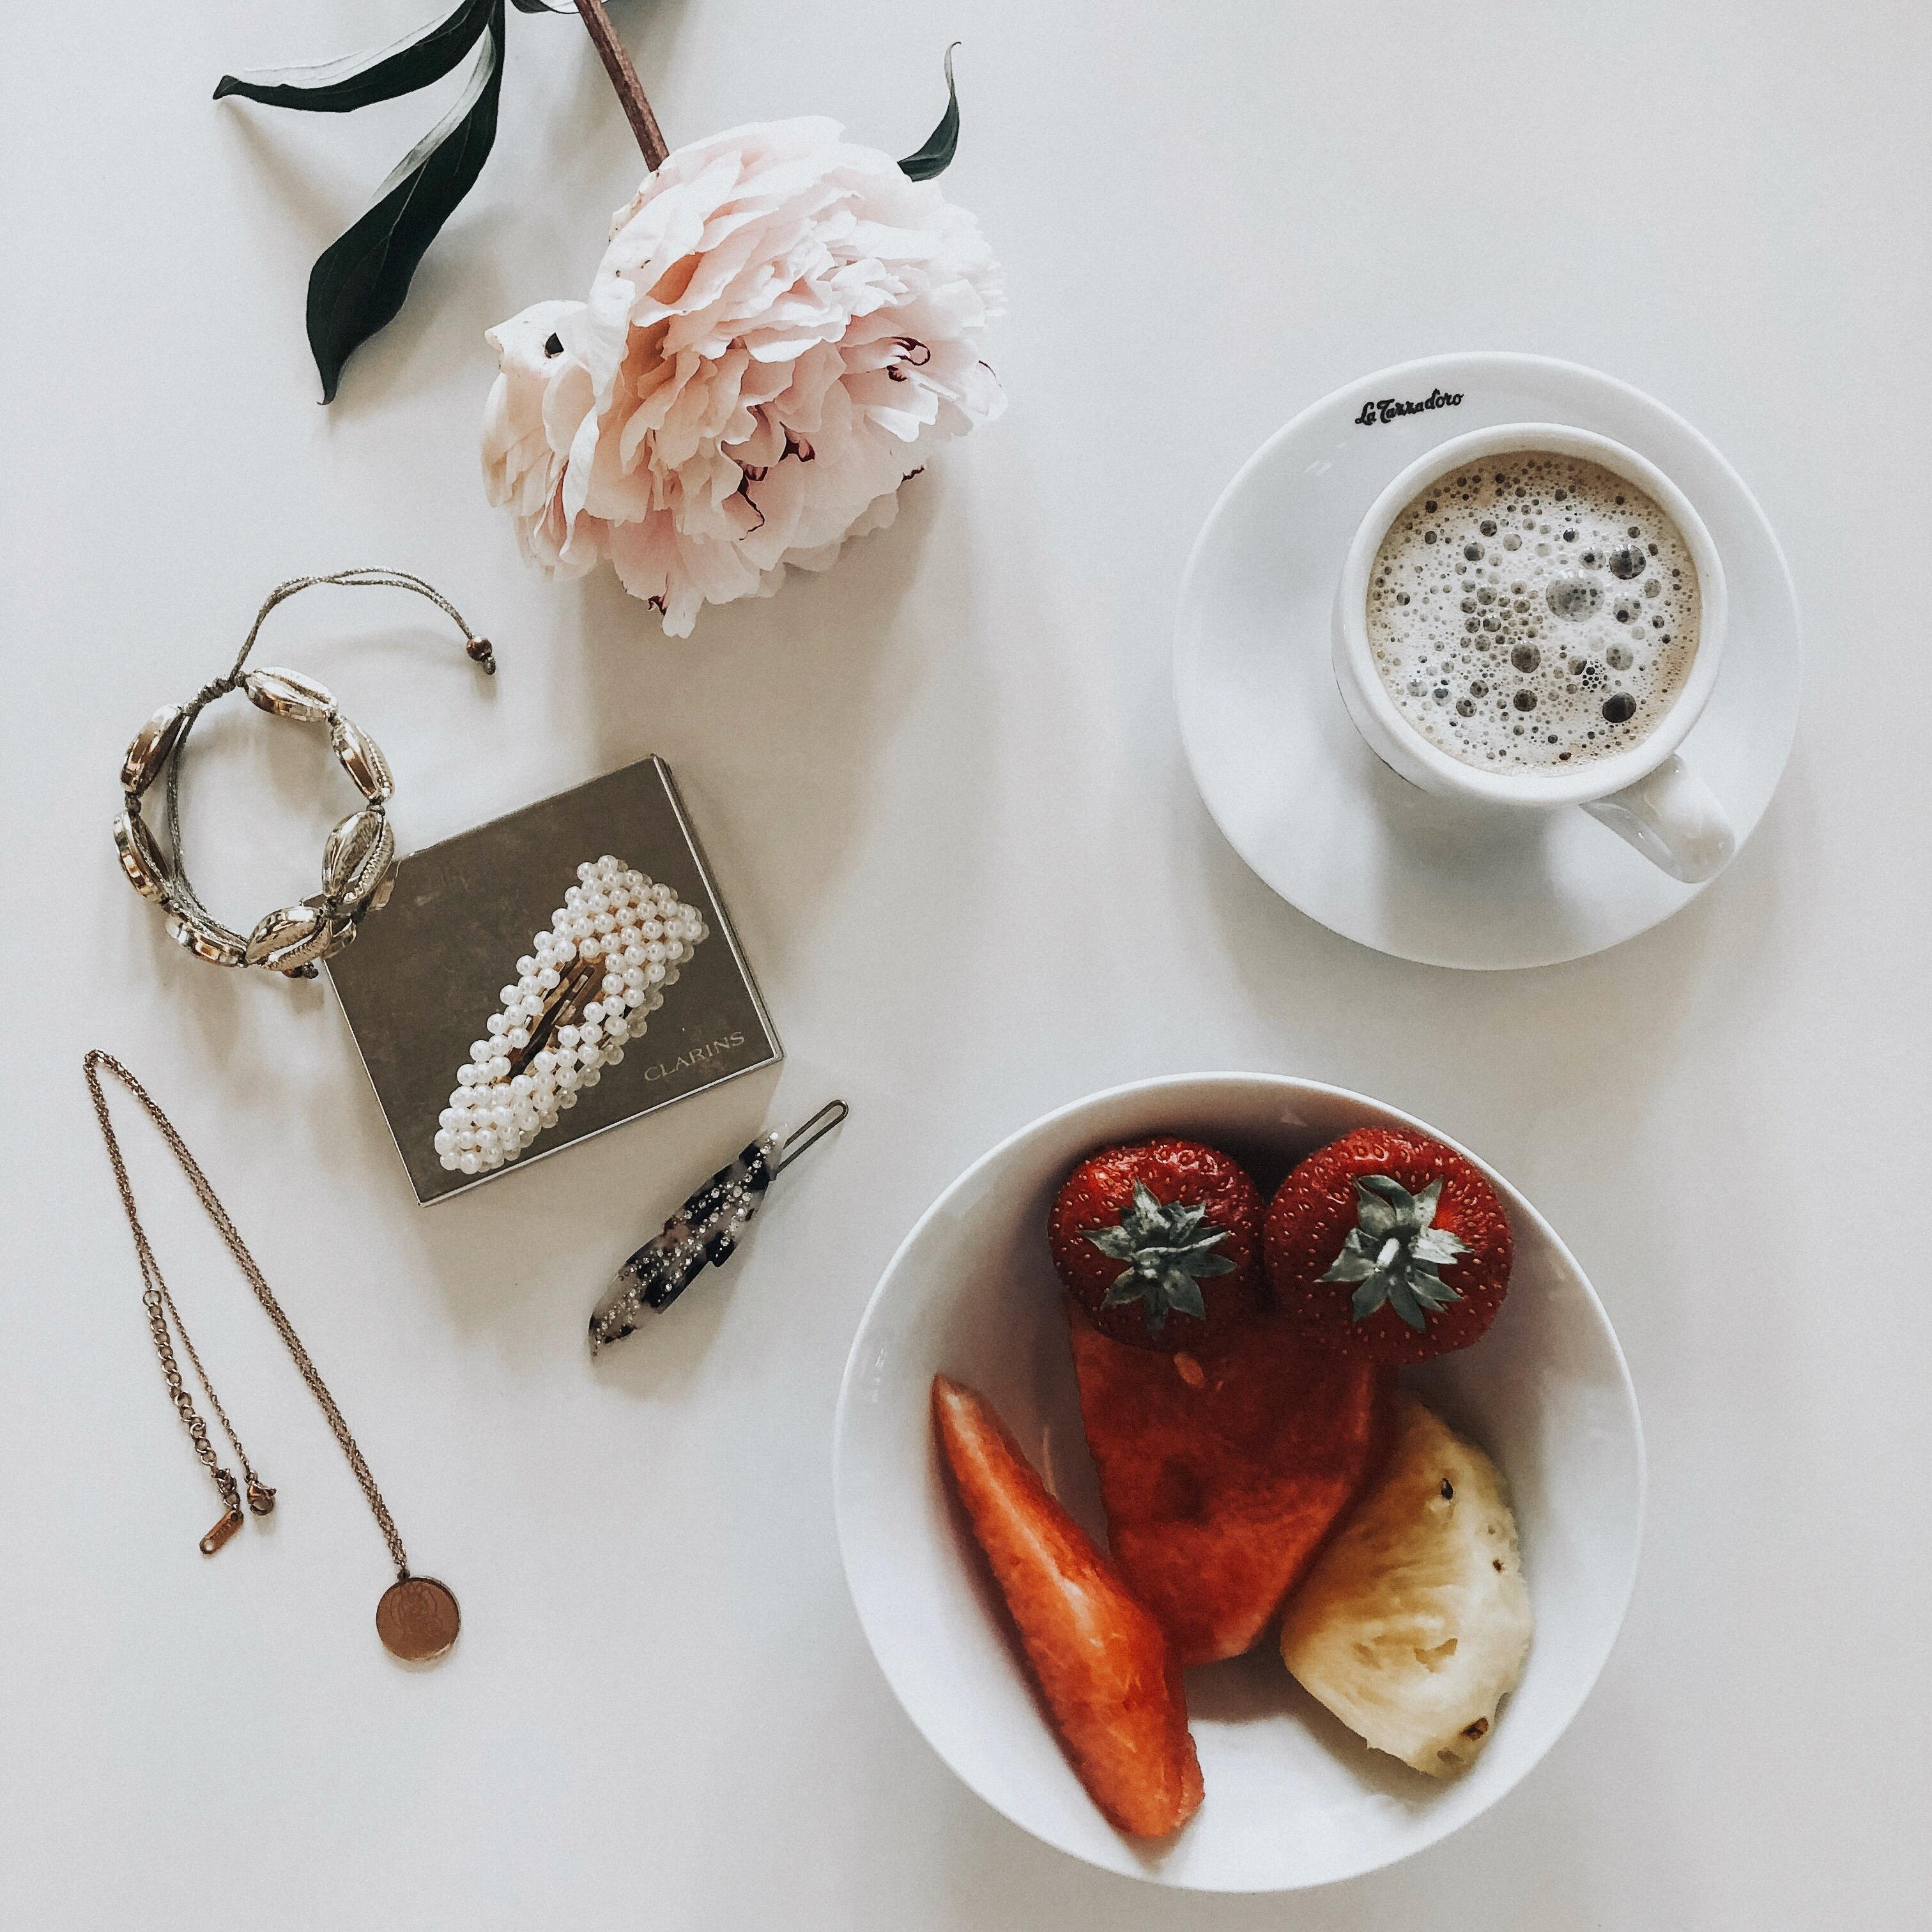 Summeressentials details coffeelover onmytable flatlay hairclips jewellery vonoben summer fashioncrush  7386a7d1 ae93 4af5 b597 44578634b9ad